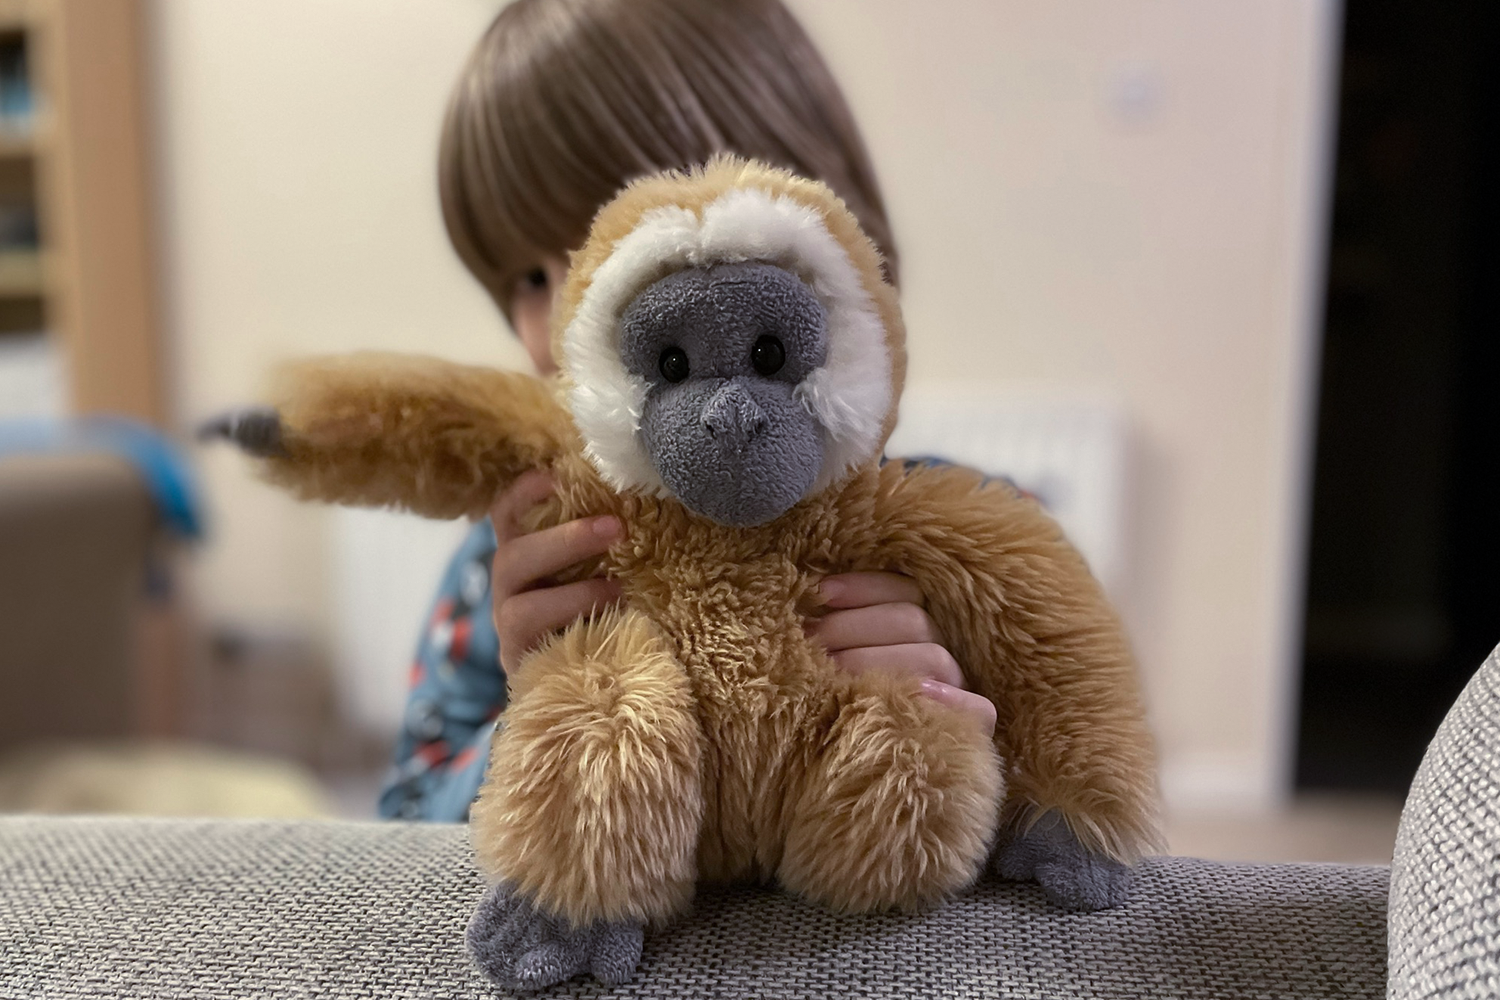 Toby hiding behind a cuddly toy gibbon